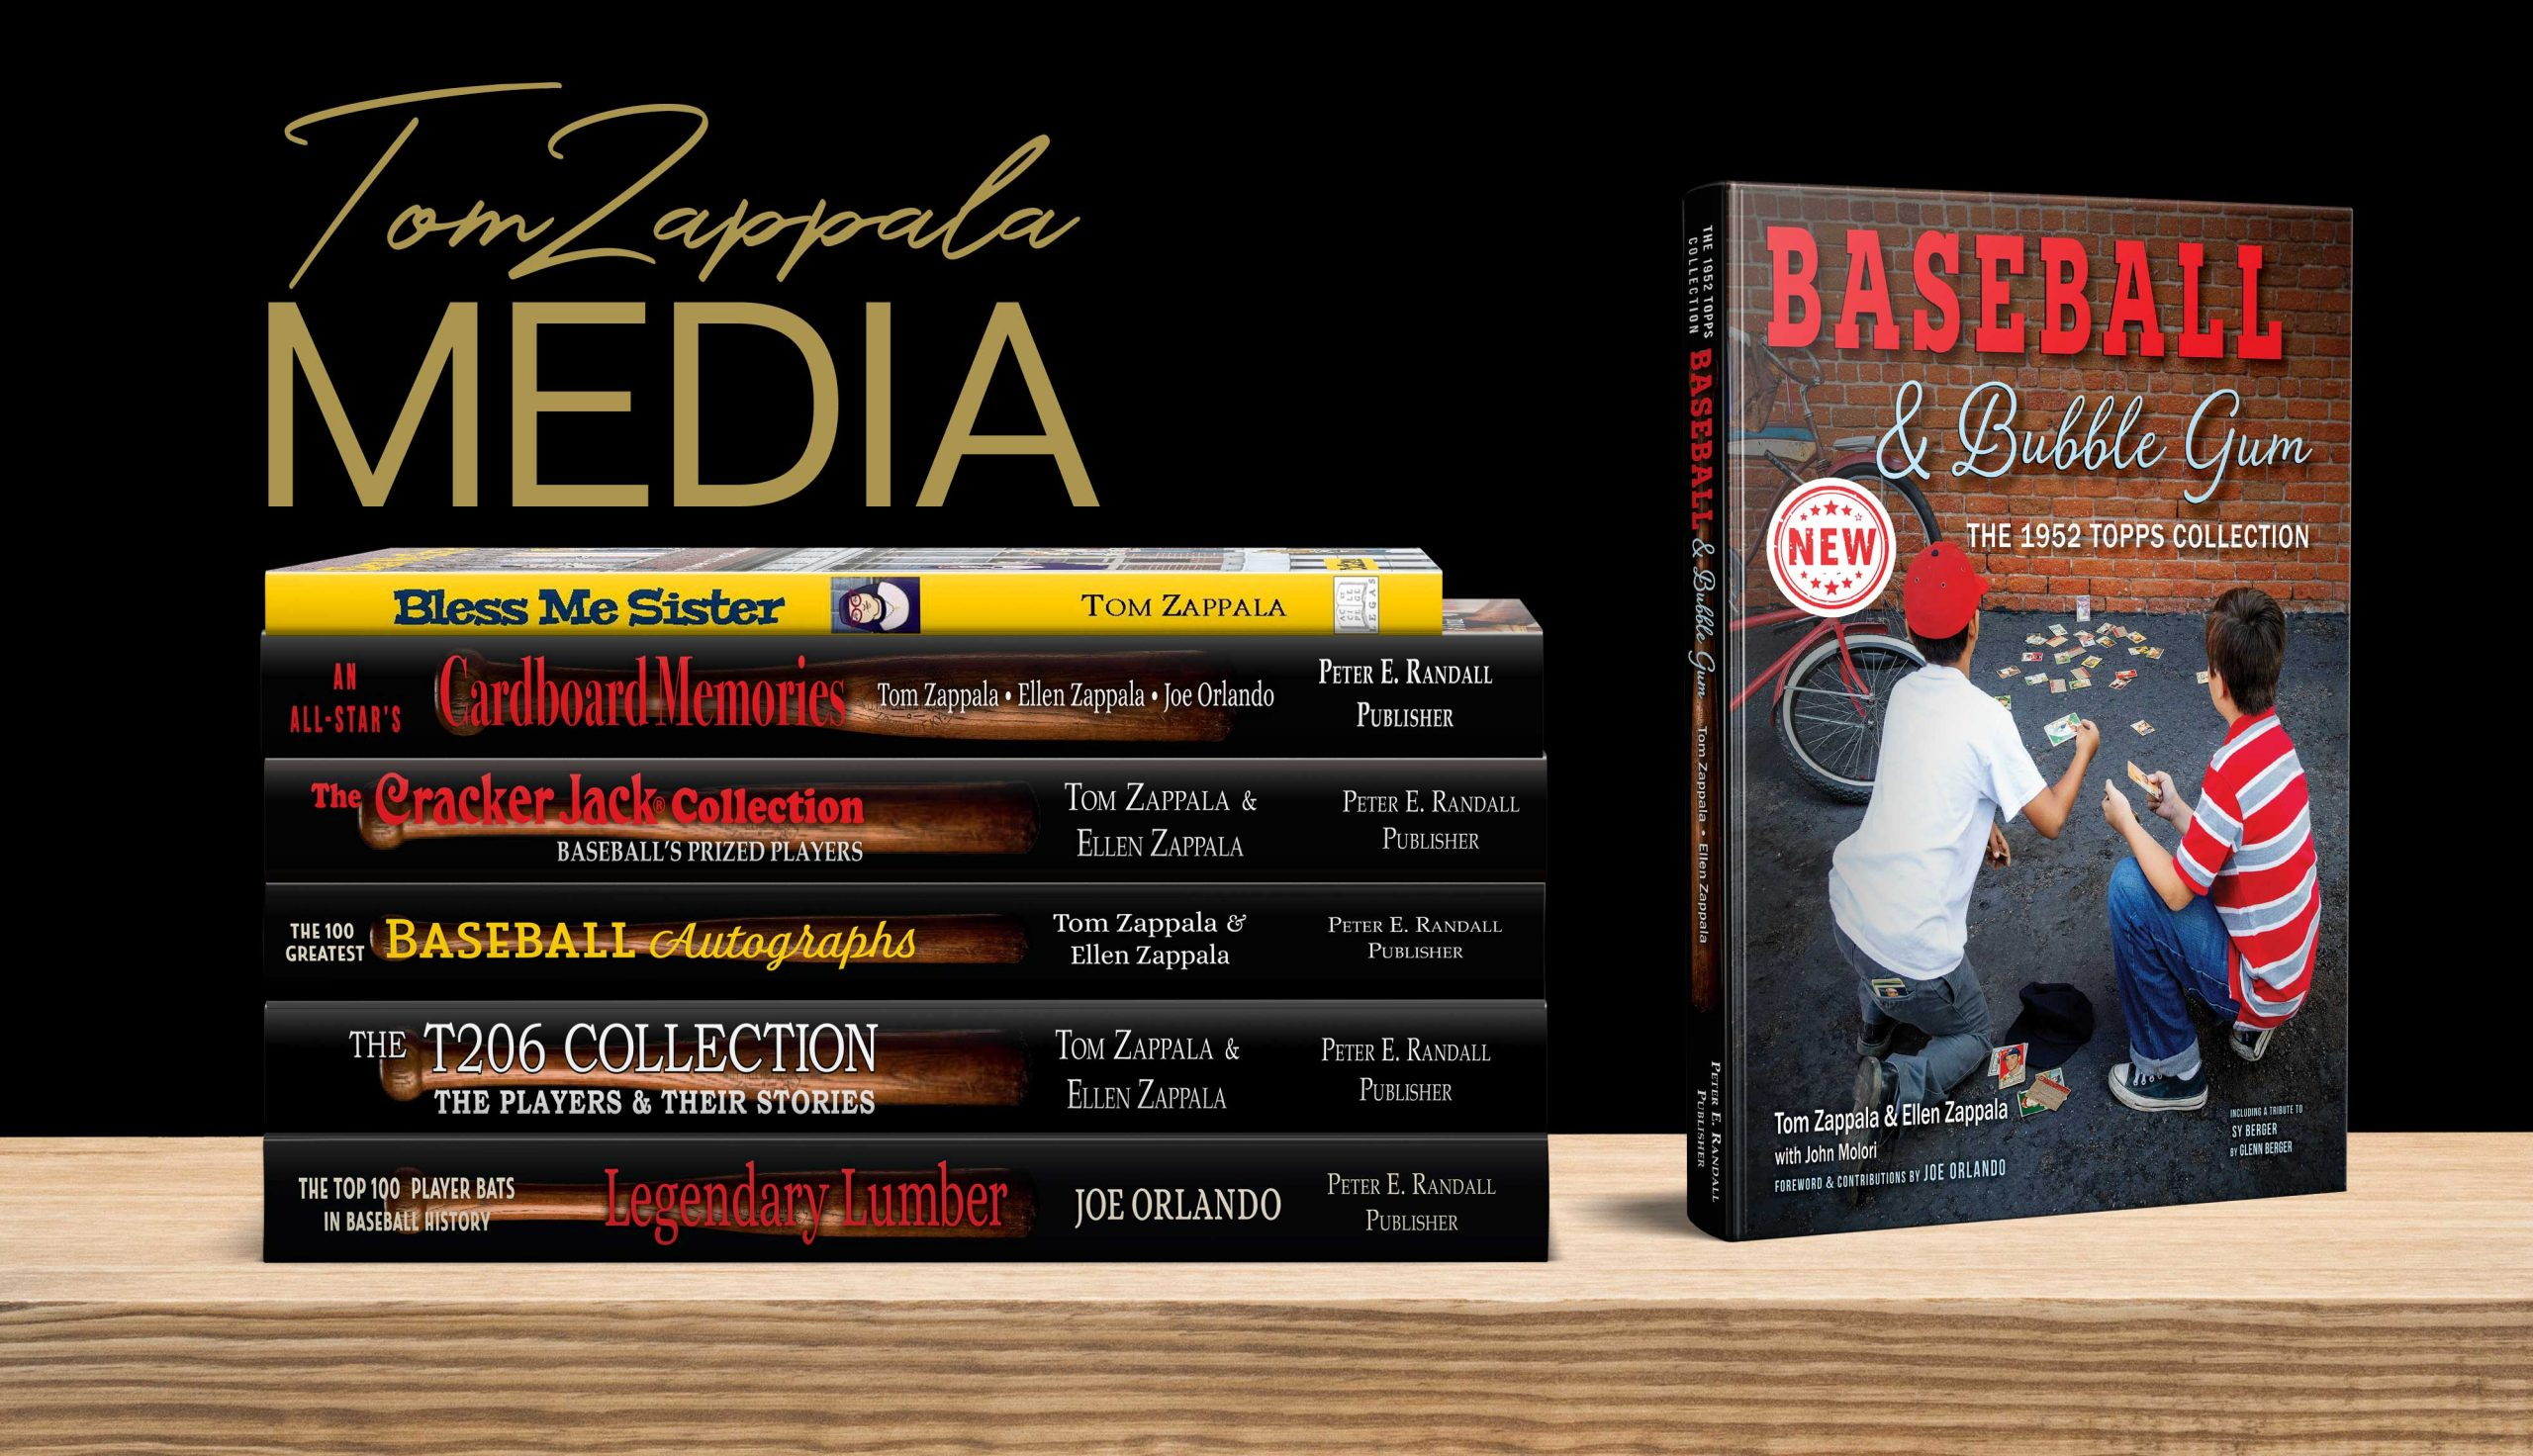 Tom Zappala Media - Award Winning Baseball Books